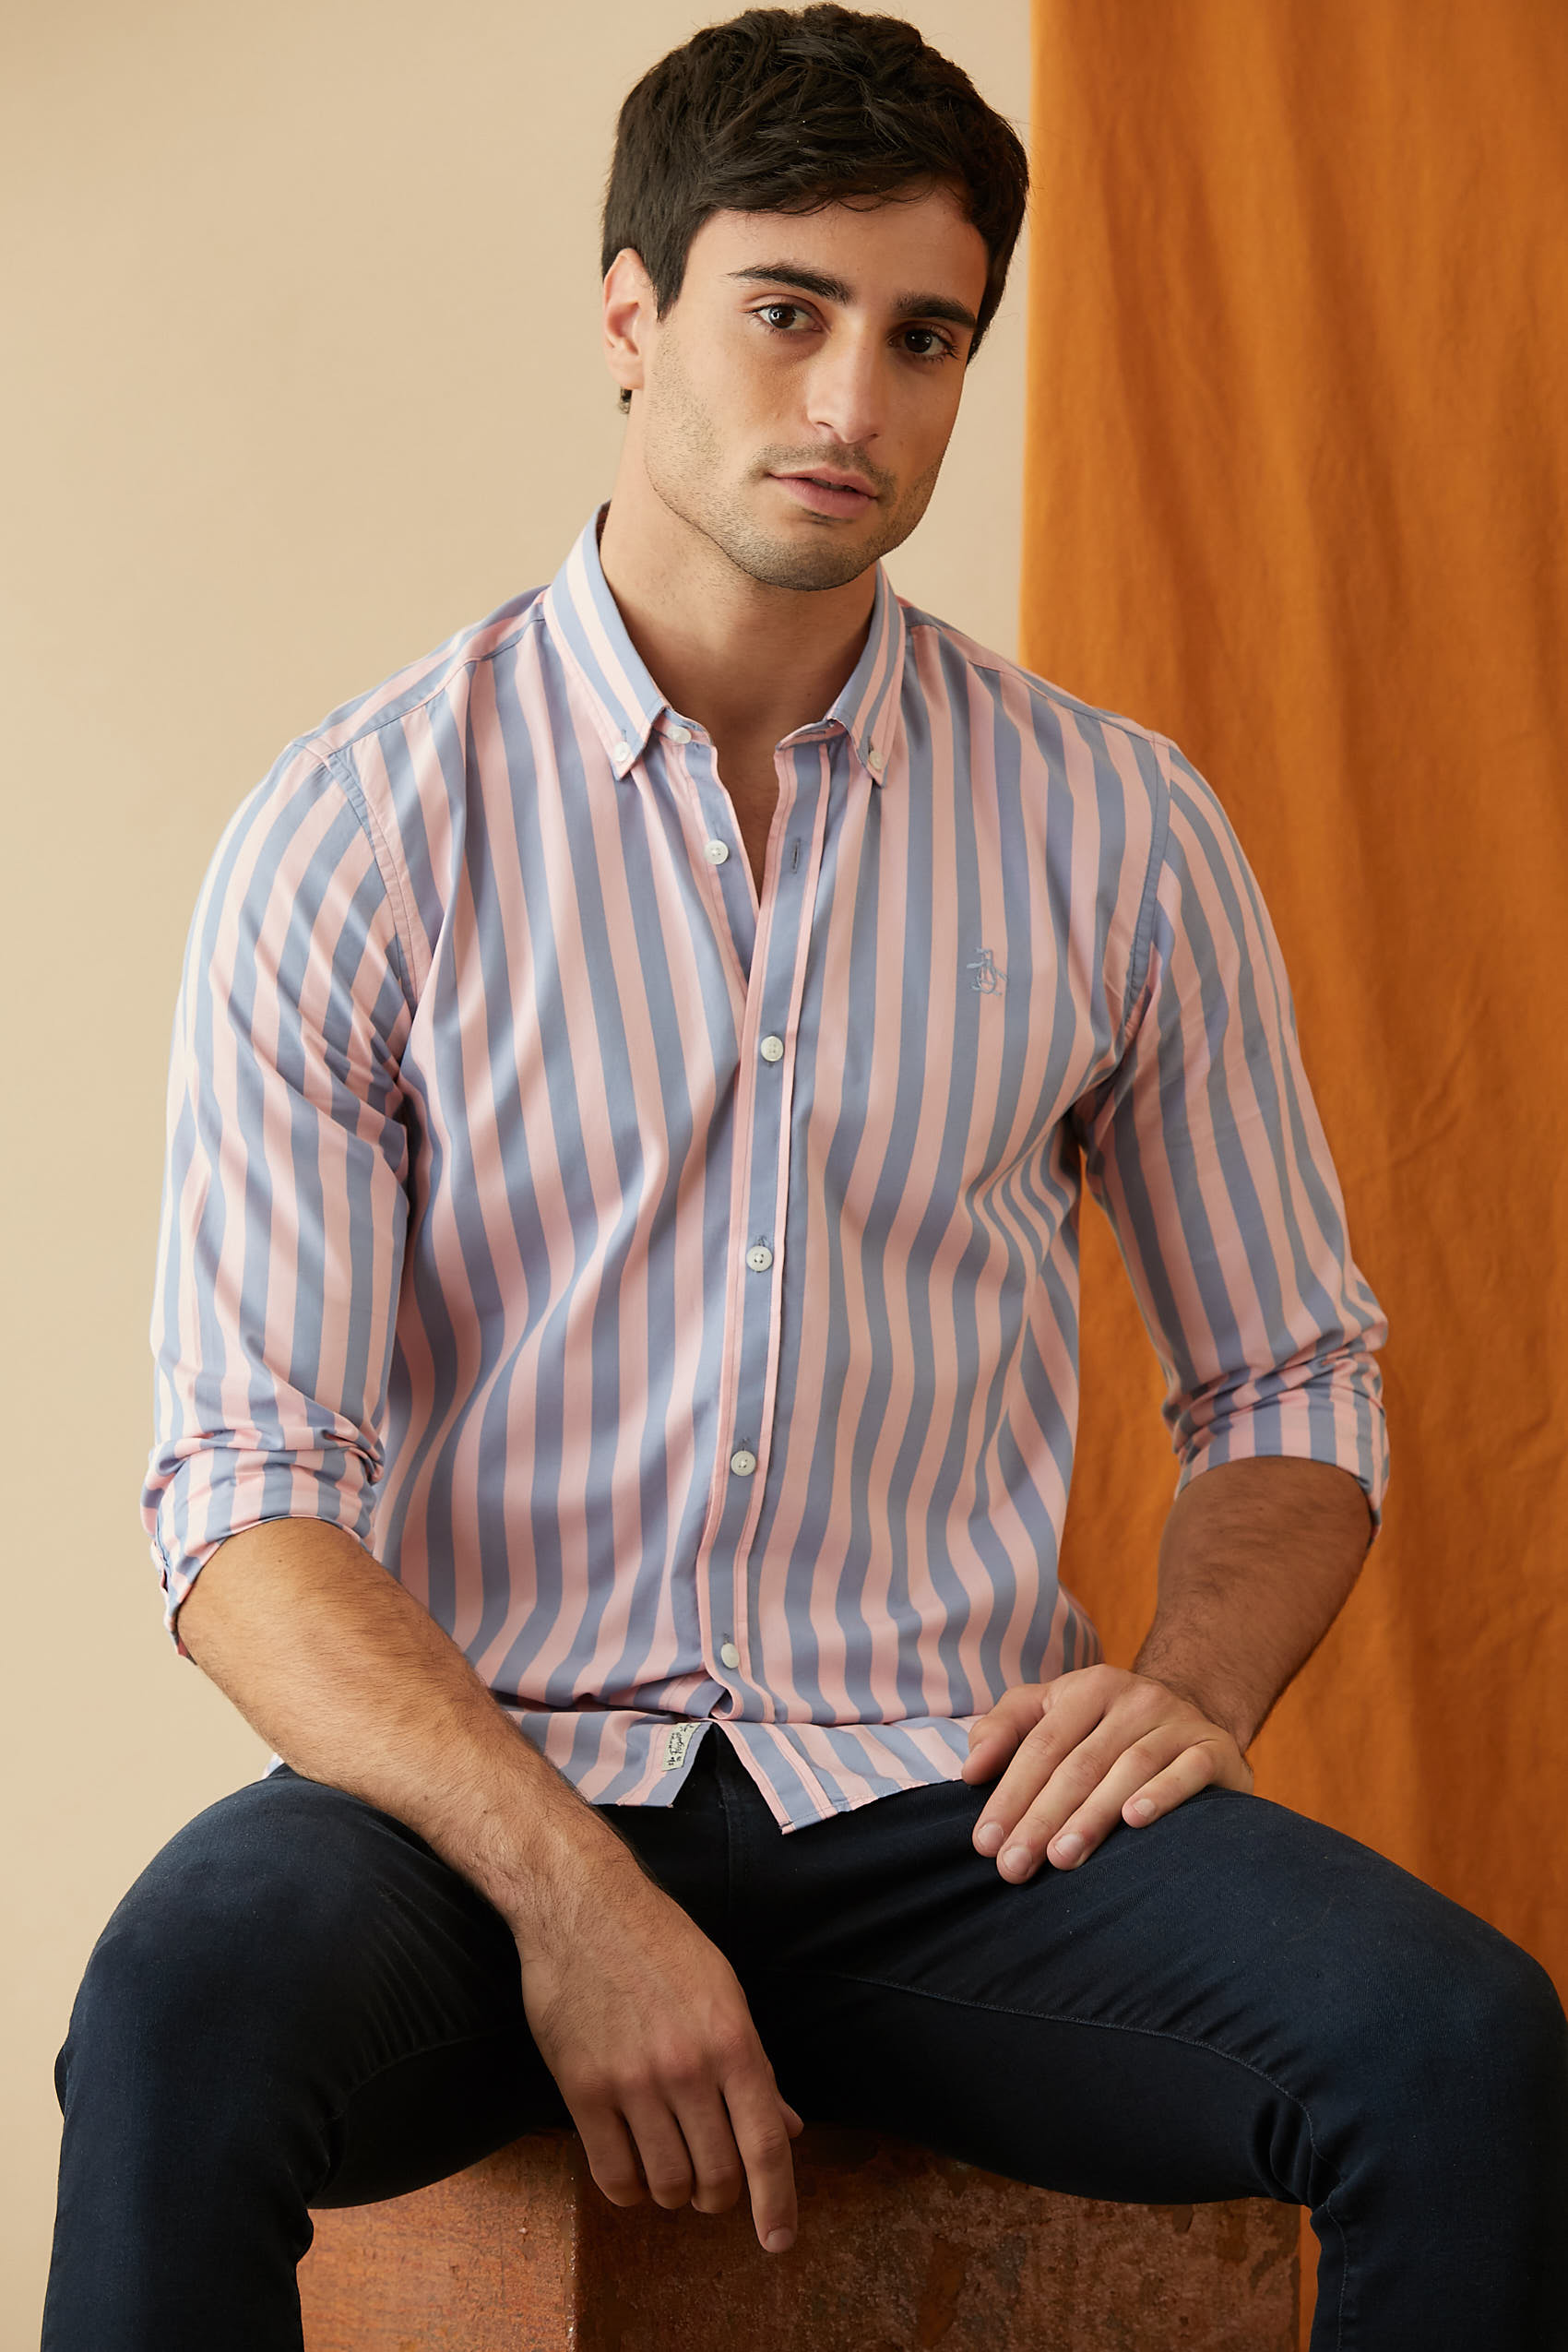 penguin_ls-two-tone-wide-stripe-shirt_20-25-2021__picture-19860